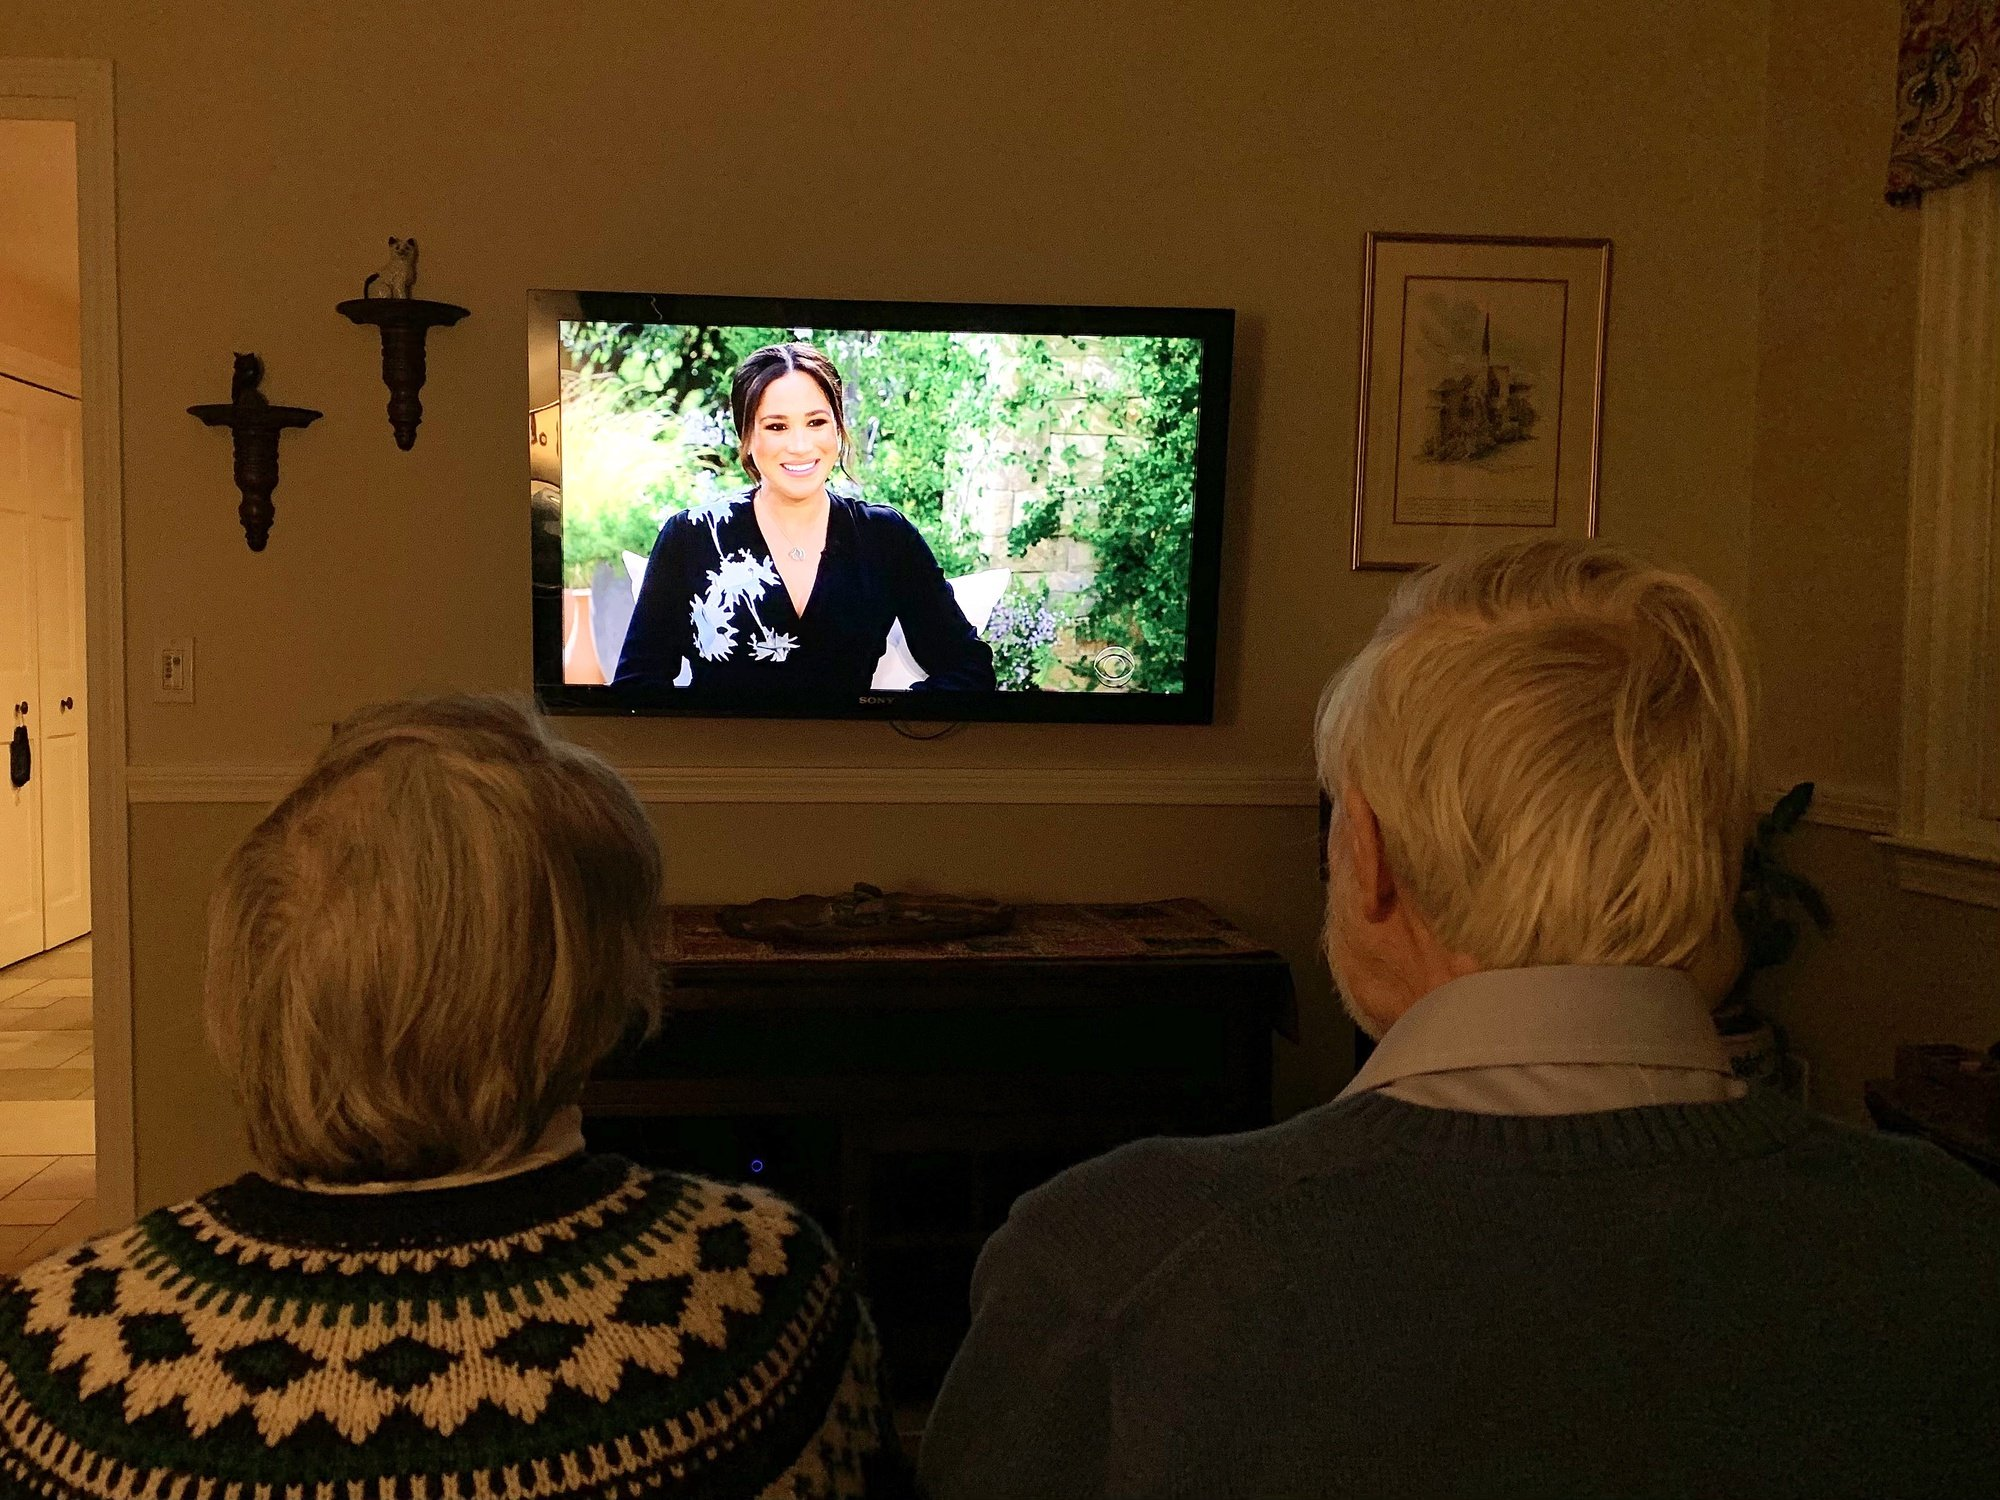 epa09060476 Ruth (L) and Ken (R) Campbell watch a televised interview by US television personality Oprah Winfrey of Britain's Harry and Meghan, Duke and Duchess of Sussex on the US netwrok CBS in West Roxbury, Massachusetts, USA, 07 March 2021.  EPA/KATE CAMPBELL